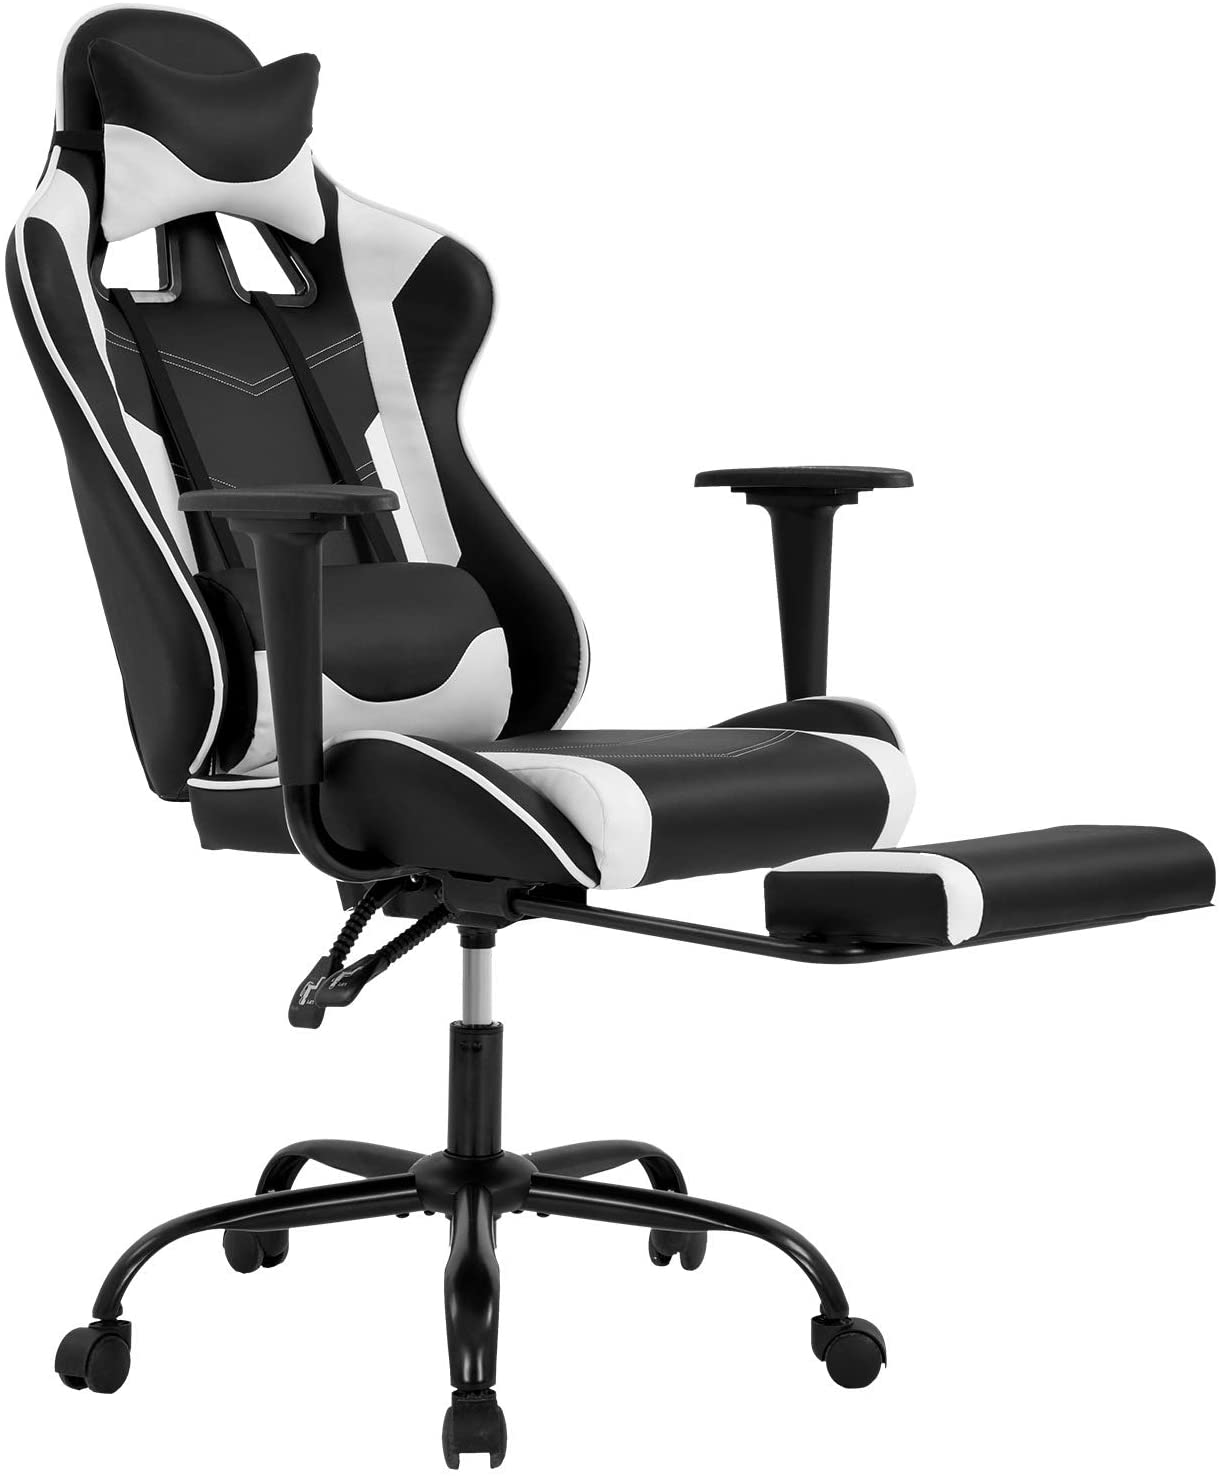 61 LMNoZ3GL. AC SL1500 Best Streaming Chair in [year] - Top 10 Products and Reviews